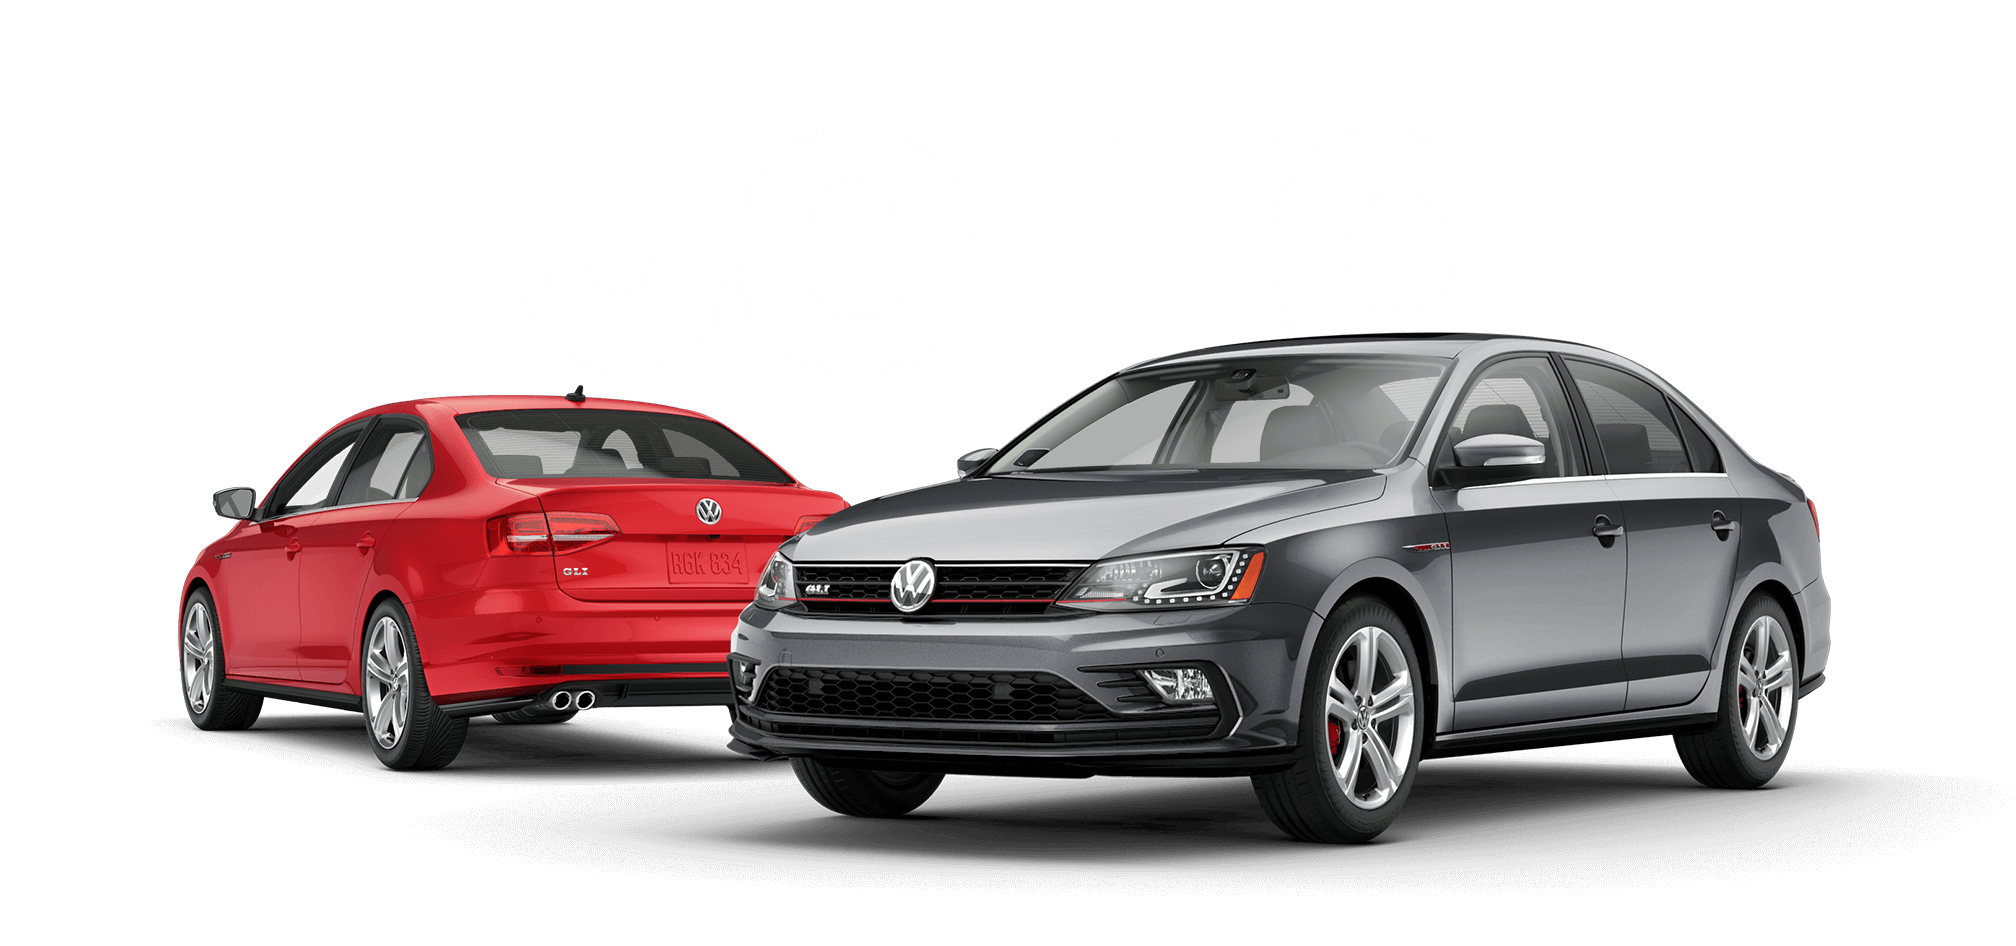 up vs models facelift old prices volkswagen volkswagenupoldnewrear blog compared new carwow